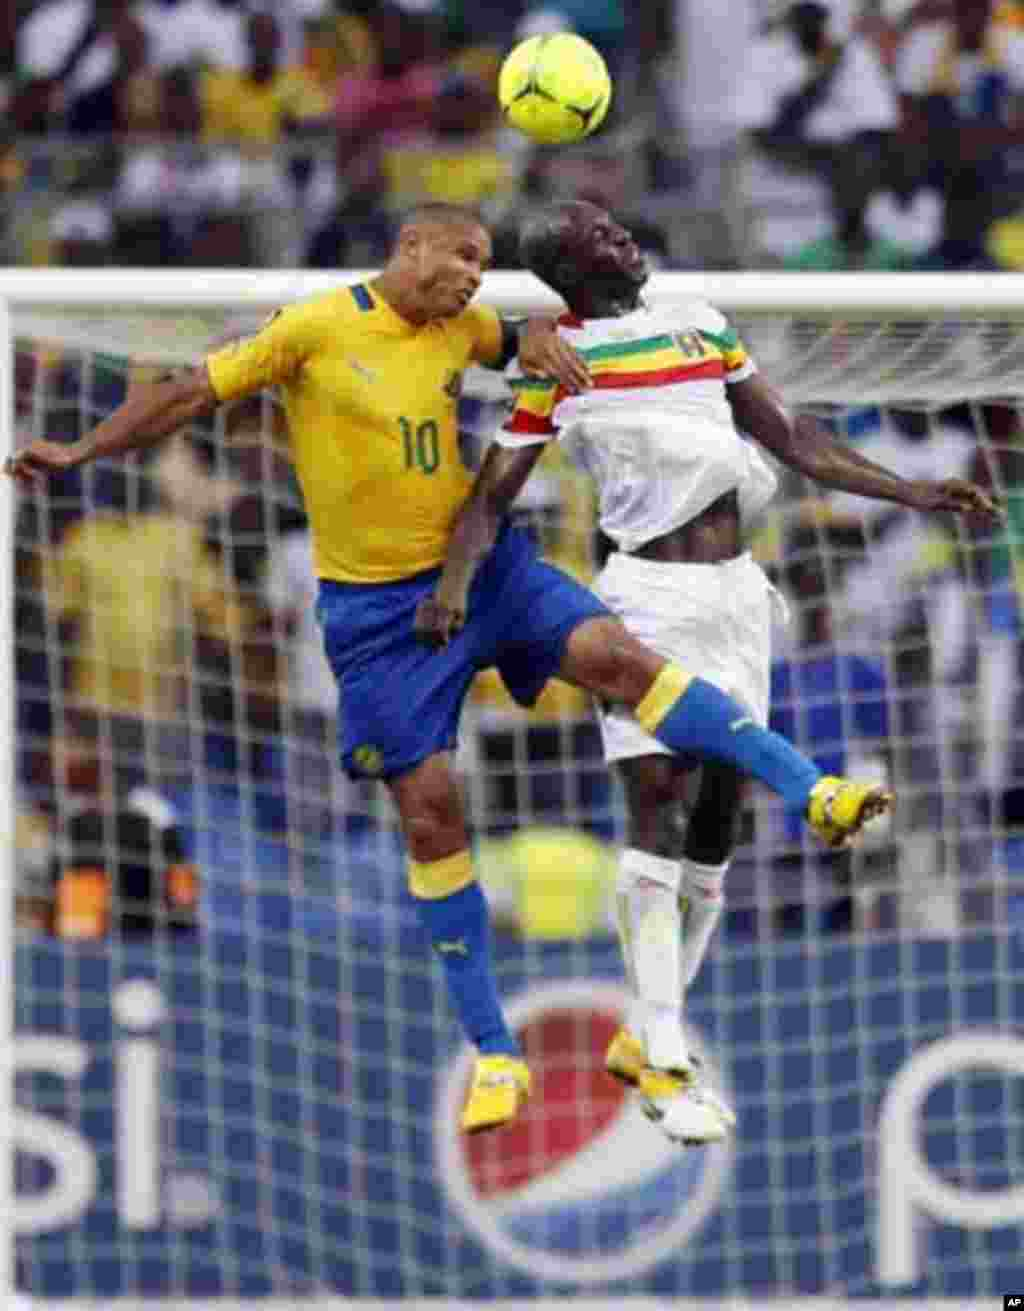 Gabon's captain Daniel Cousin (L) jumps for the ball with Mali's Drissa Diakite during their African Cup of Nations quarter-final soccer match against Mali at the Stade De L'Amitie Stadium in Gabon's capital Libreville February 5, 2012.